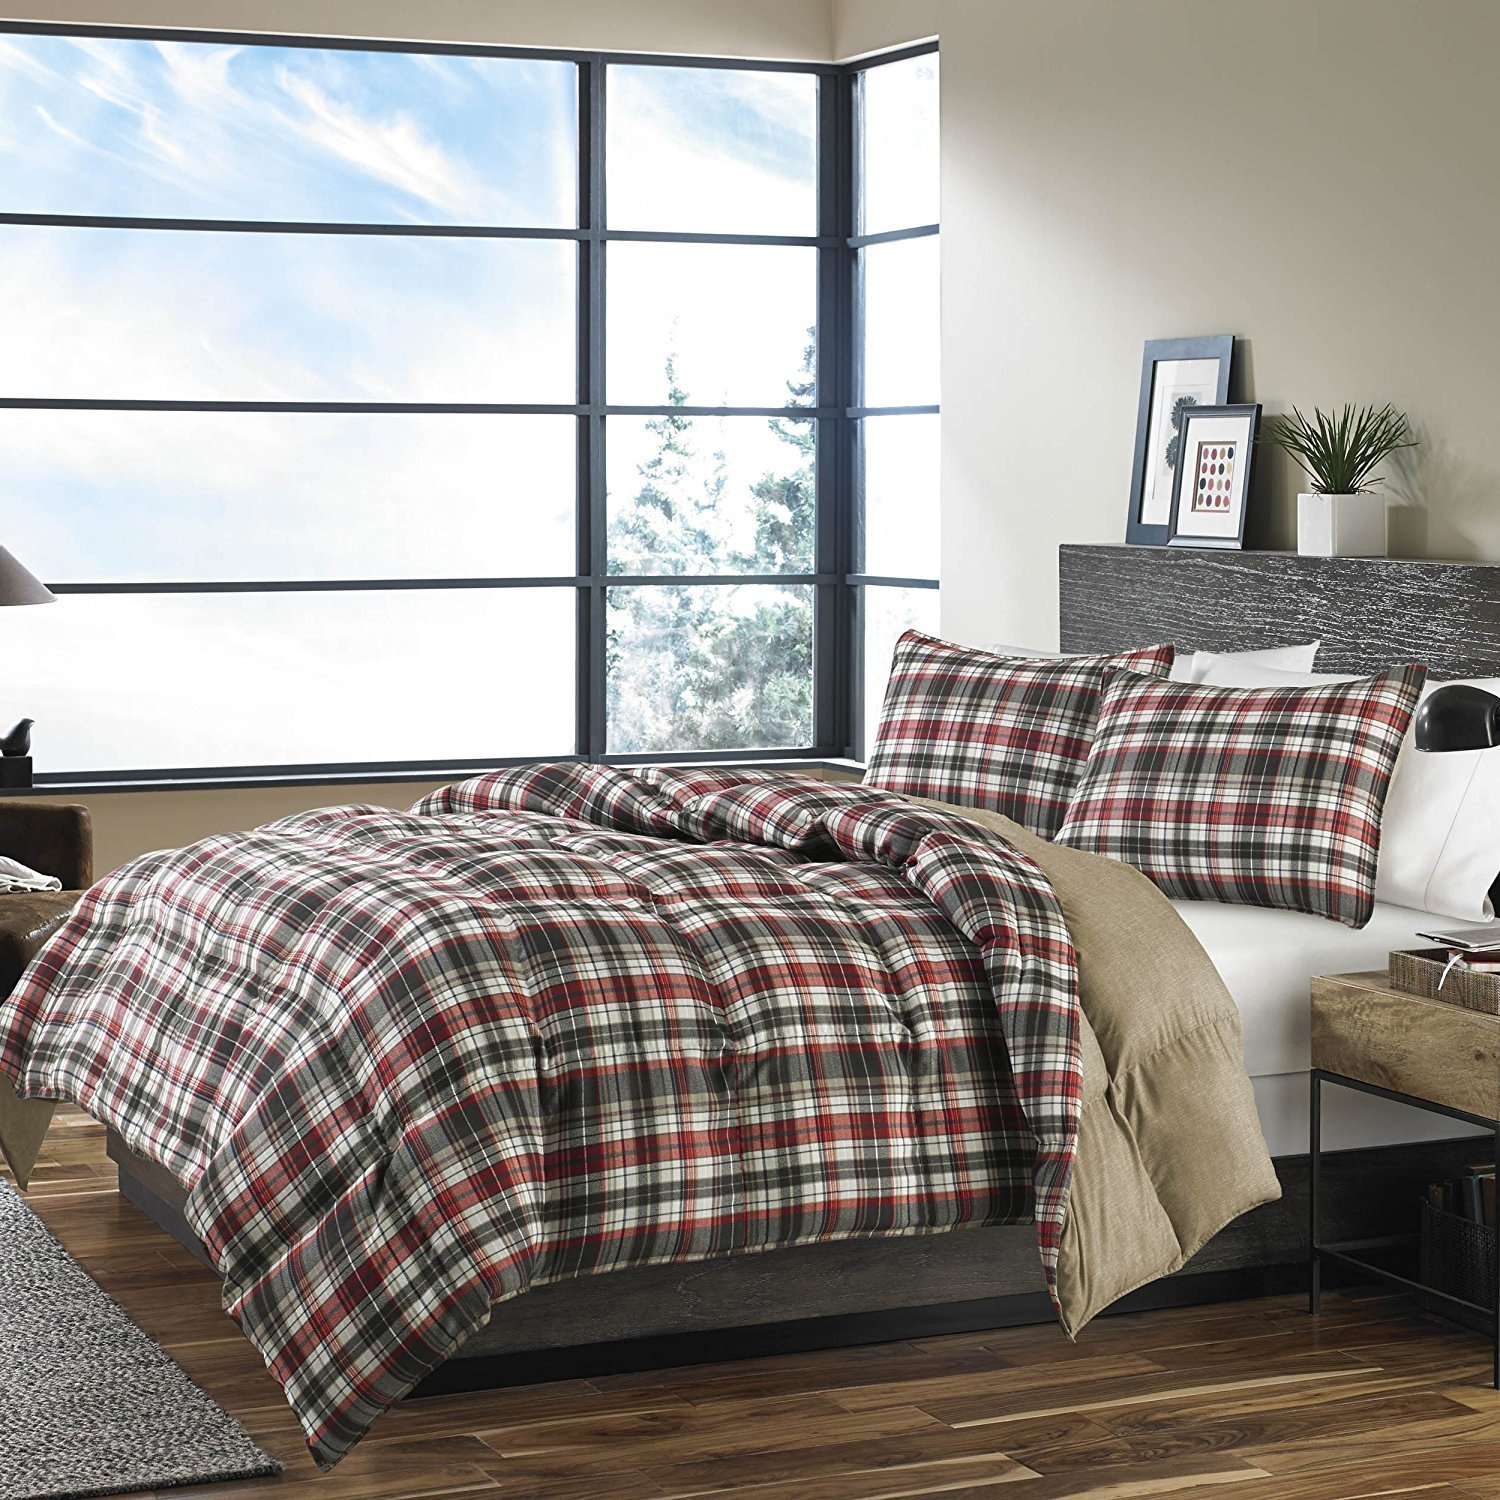 OSD 3pc Red Dark Grey White Tartan Plaid Comforter Full Queen Set, Stylish Madras Checkered Bedding, Burgundy Gray Taupe Tan Brown, Lodge Cabin Lumber Jack Glen Check Themed Pattern